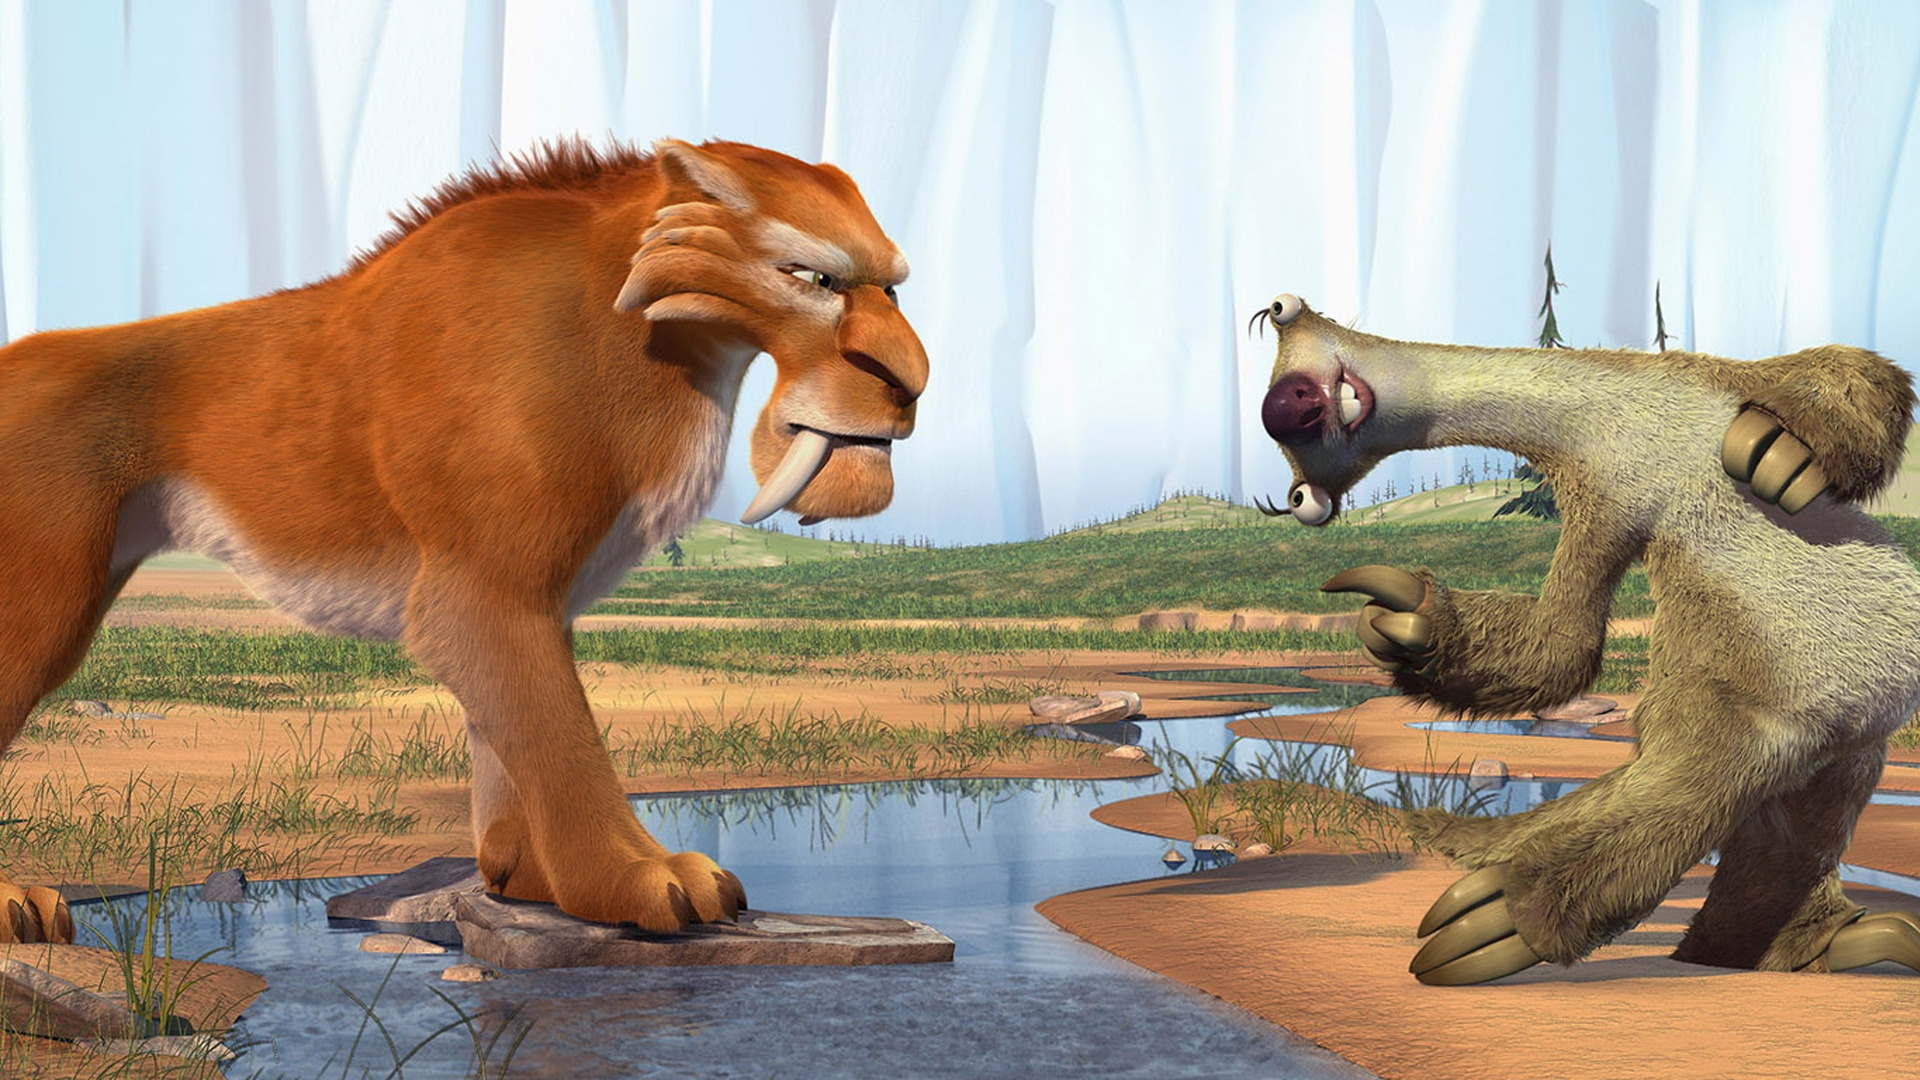 Ice Age Diego and Sid for 1920 x 1080 HDTV 1080p resolution